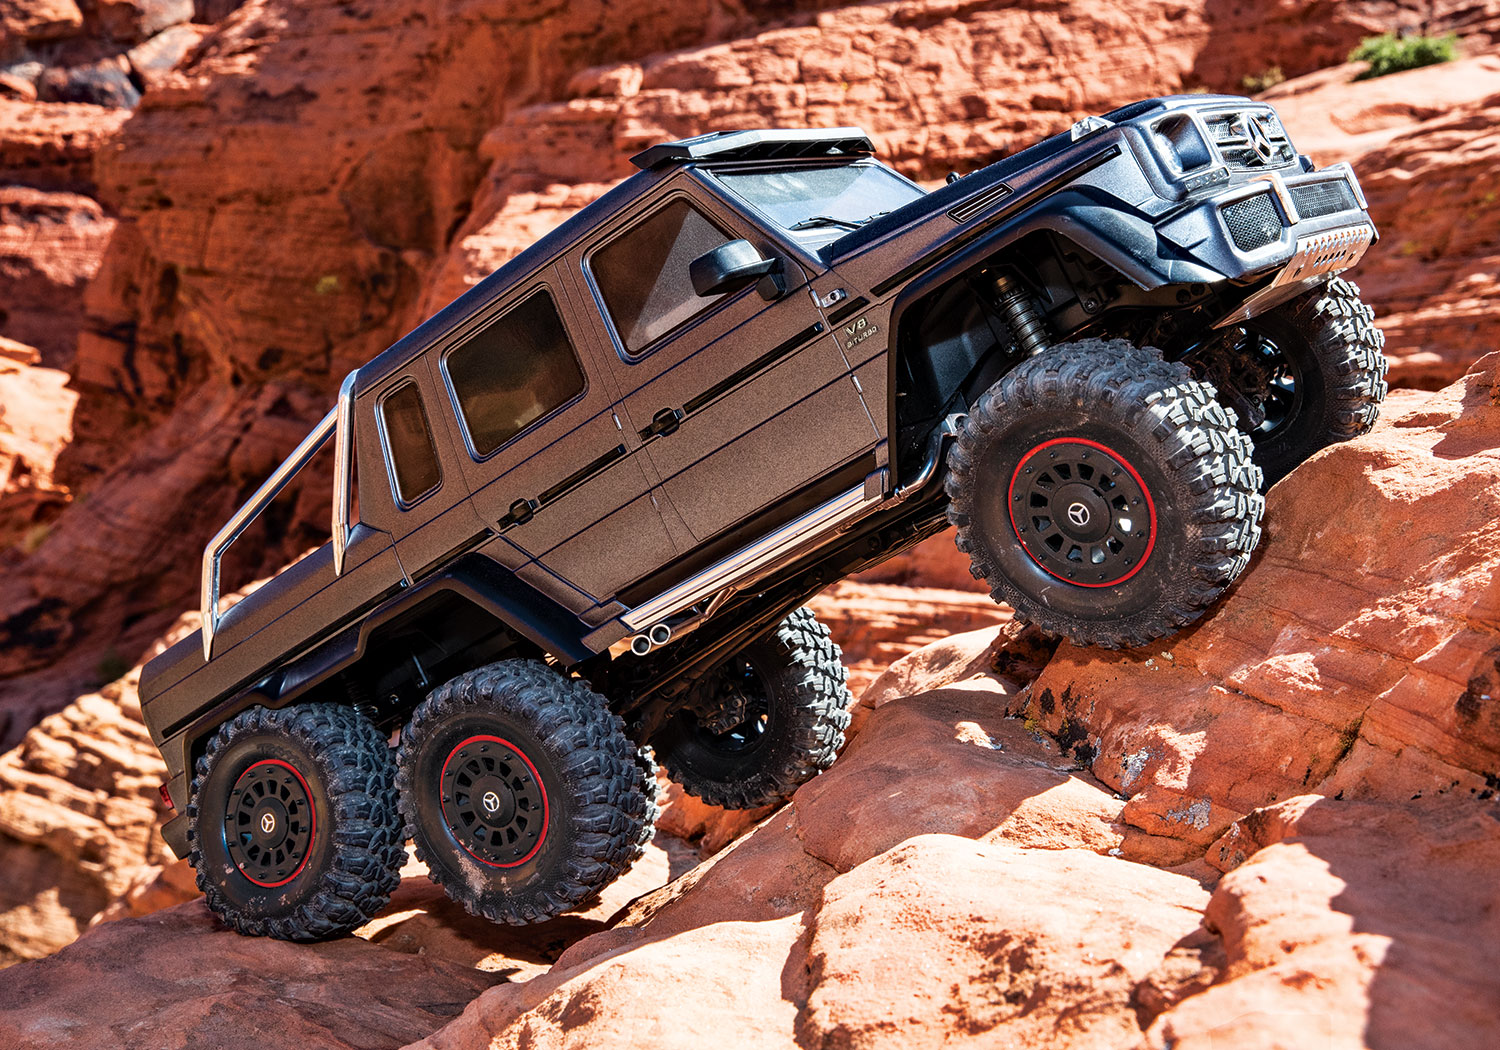 TRX-4 with Mercedes-Benz G 63 AMG 6x6 Silver Rock Crawl